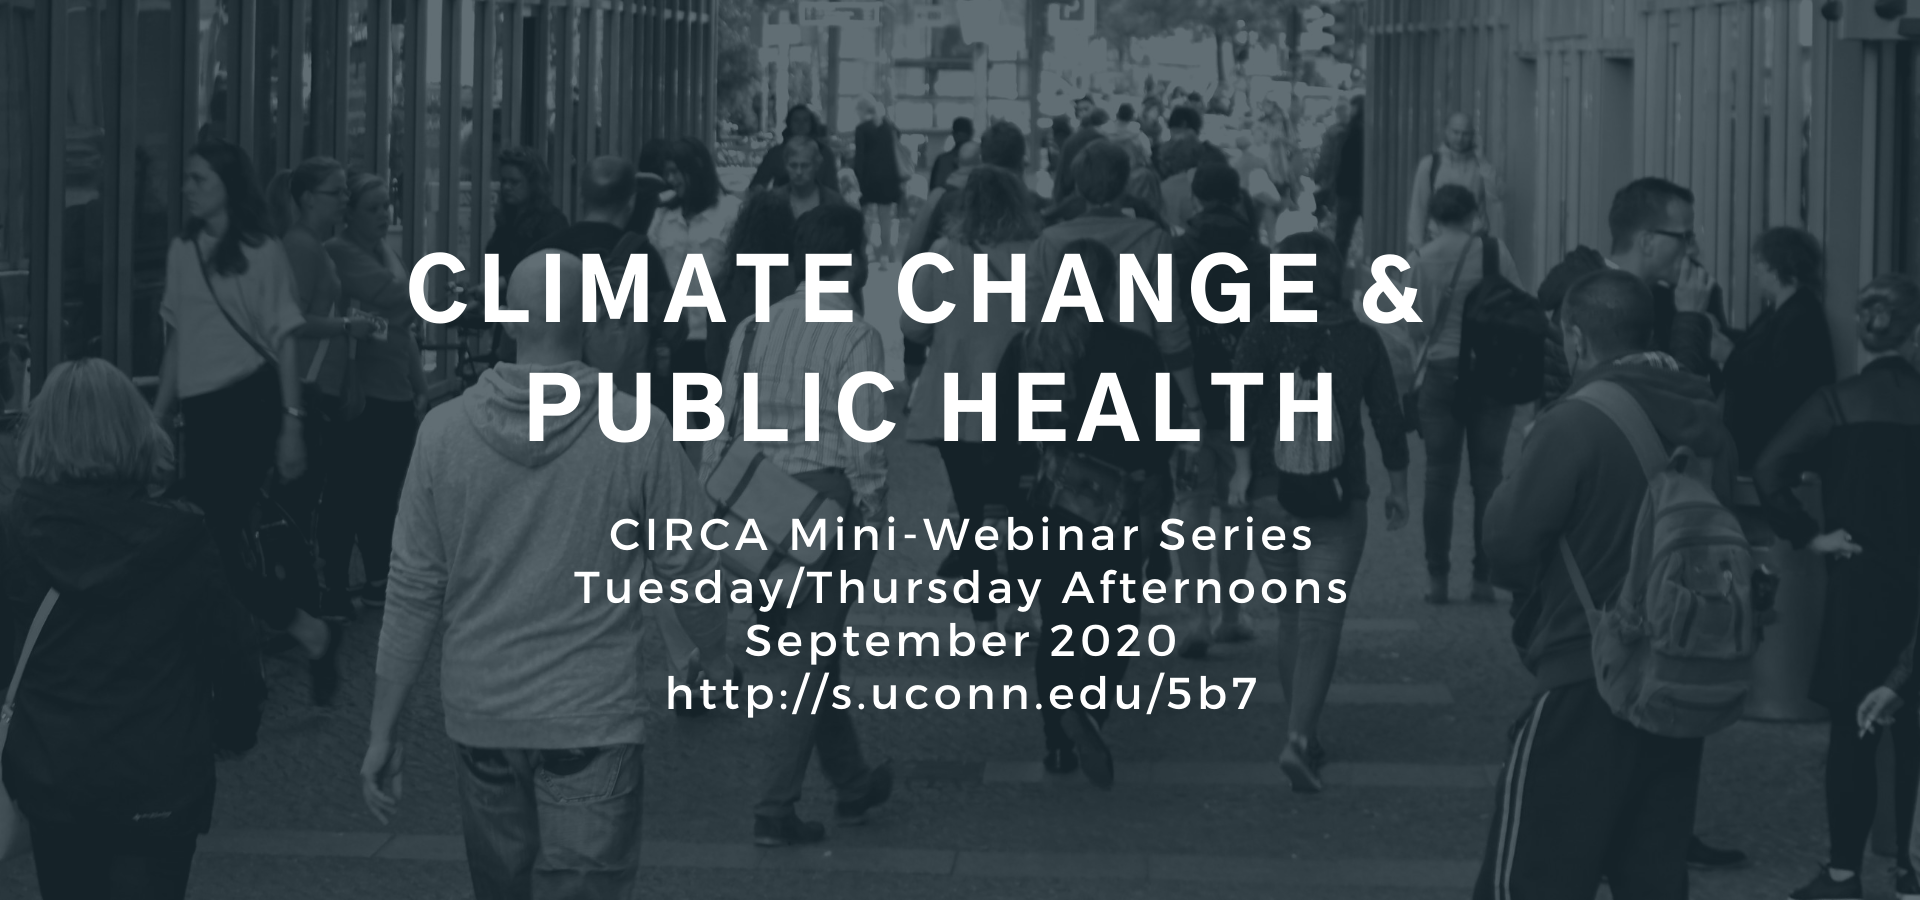 climate change and public health minseries notice and registration link